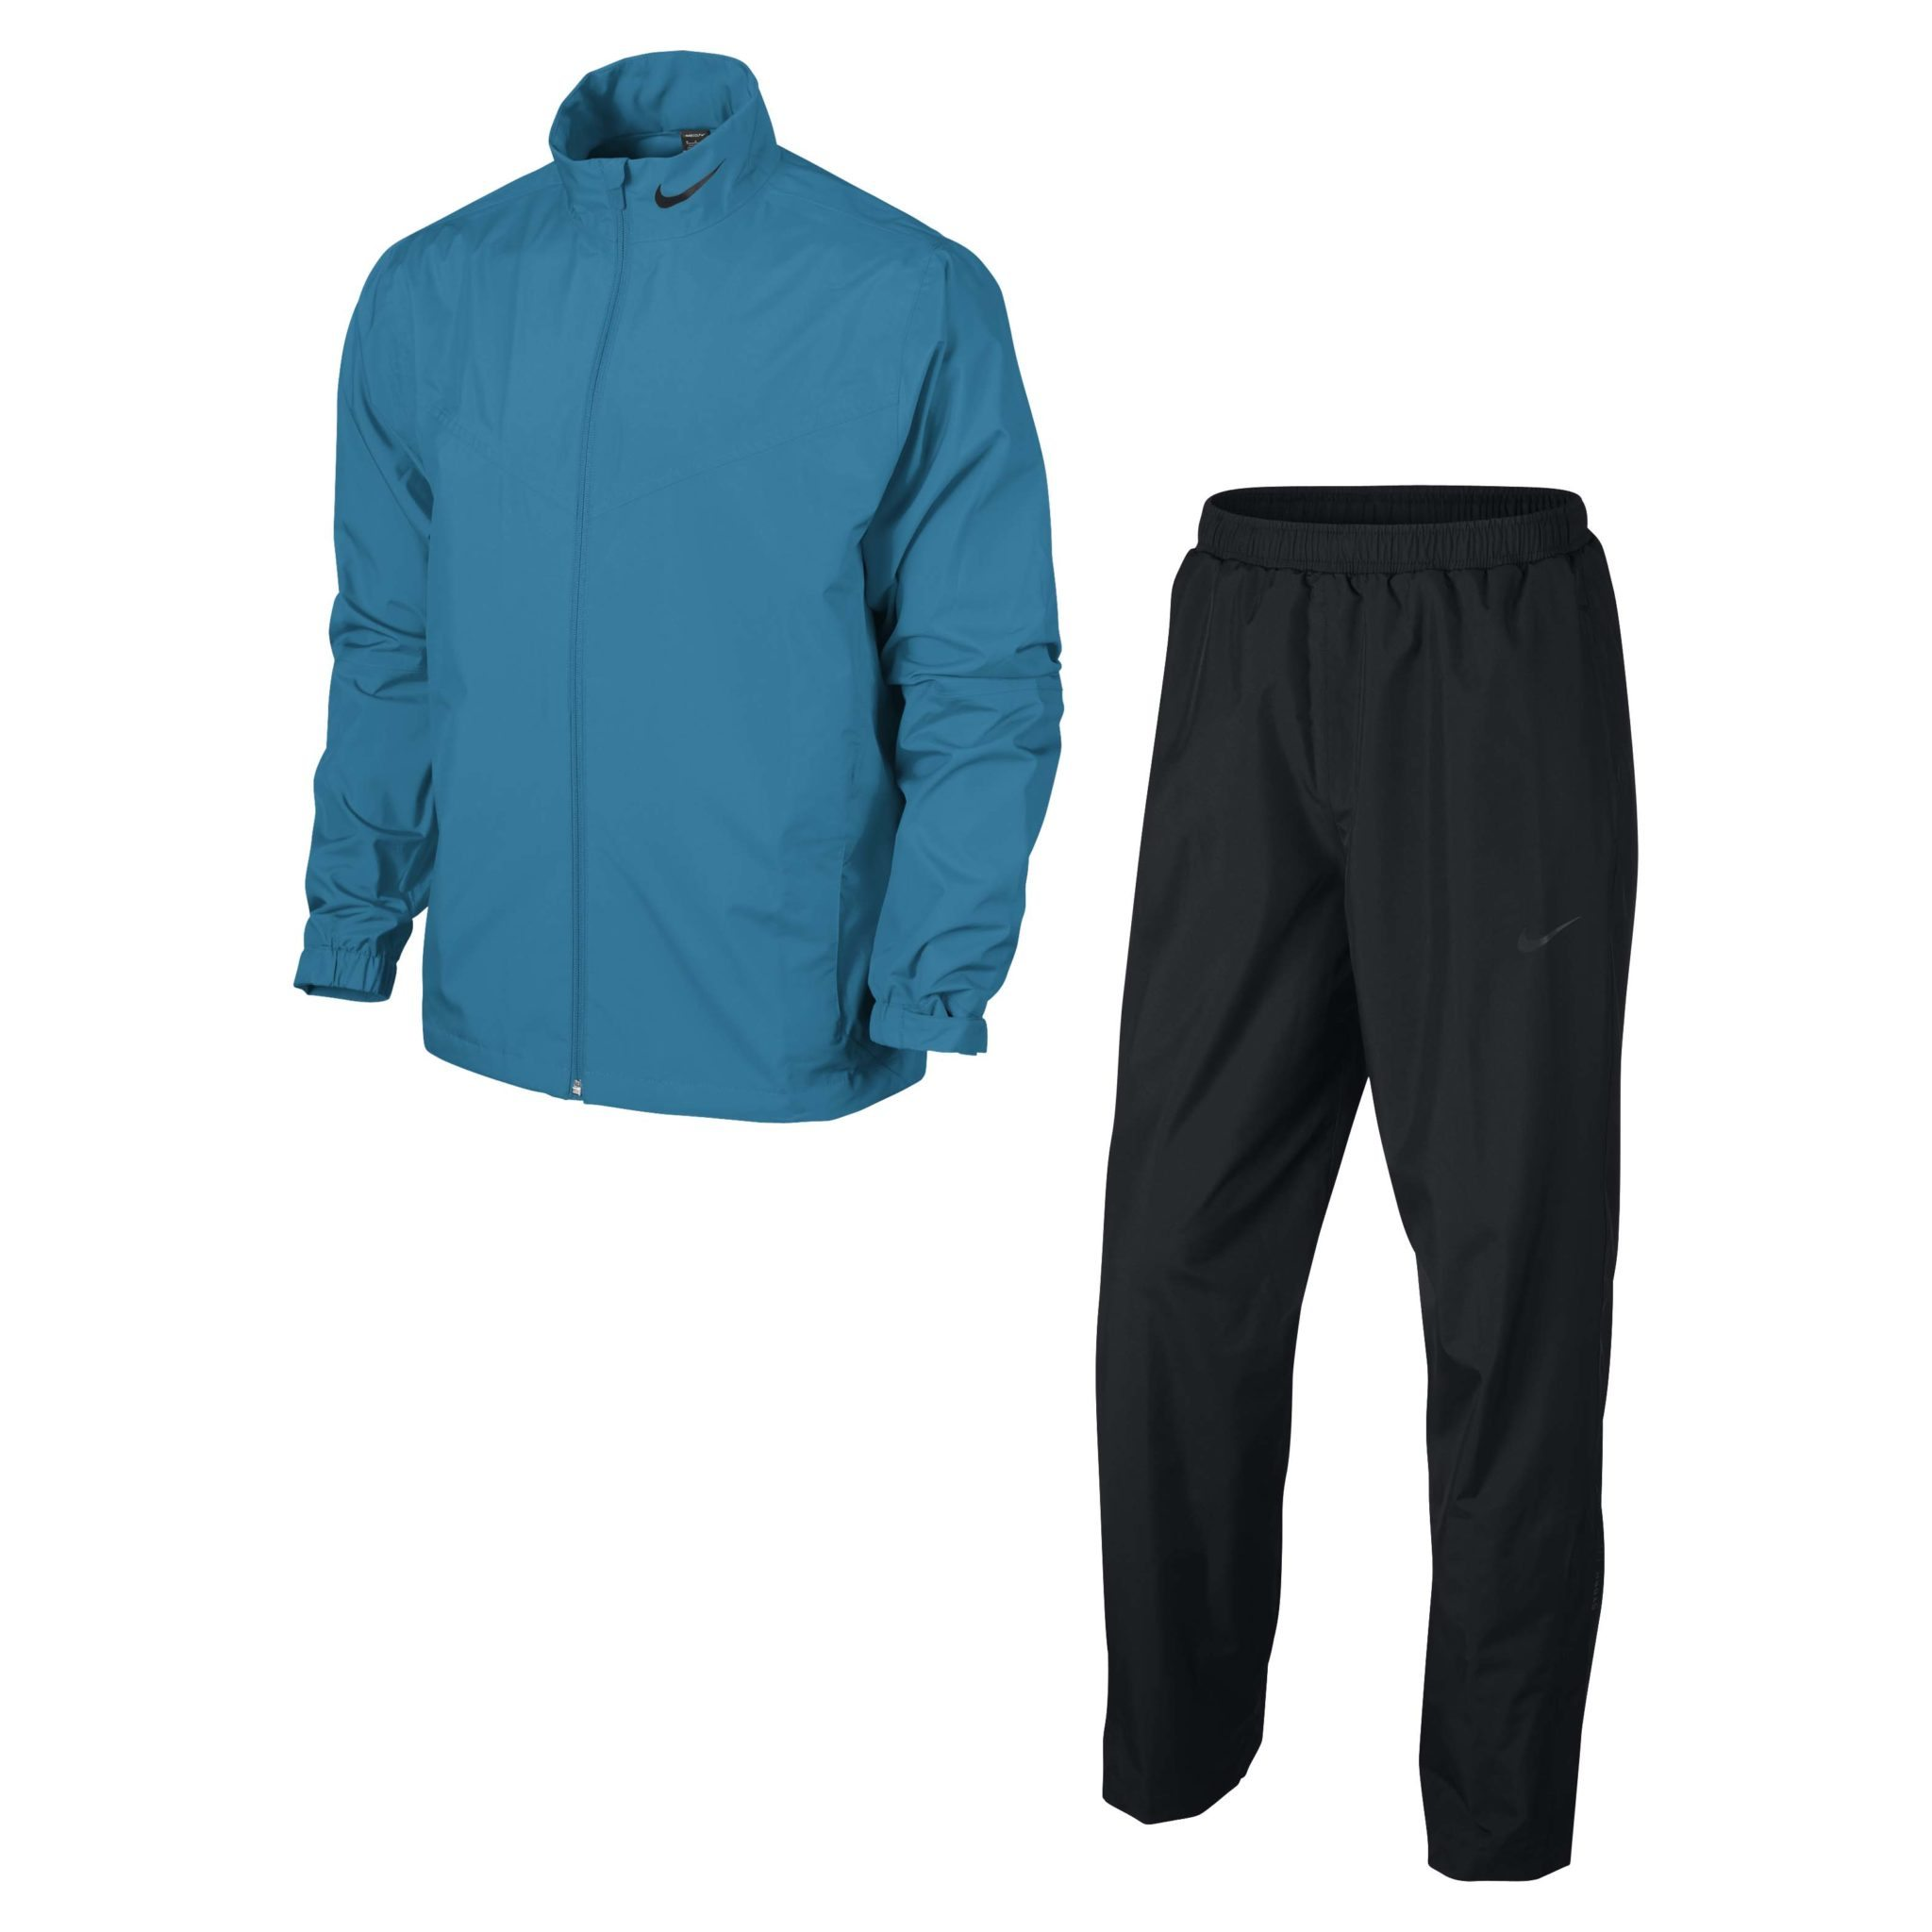 Nike Golf Mens New Storm-Fit Packable Rain Suit - Light Blue Lacquer Black c5529db25265